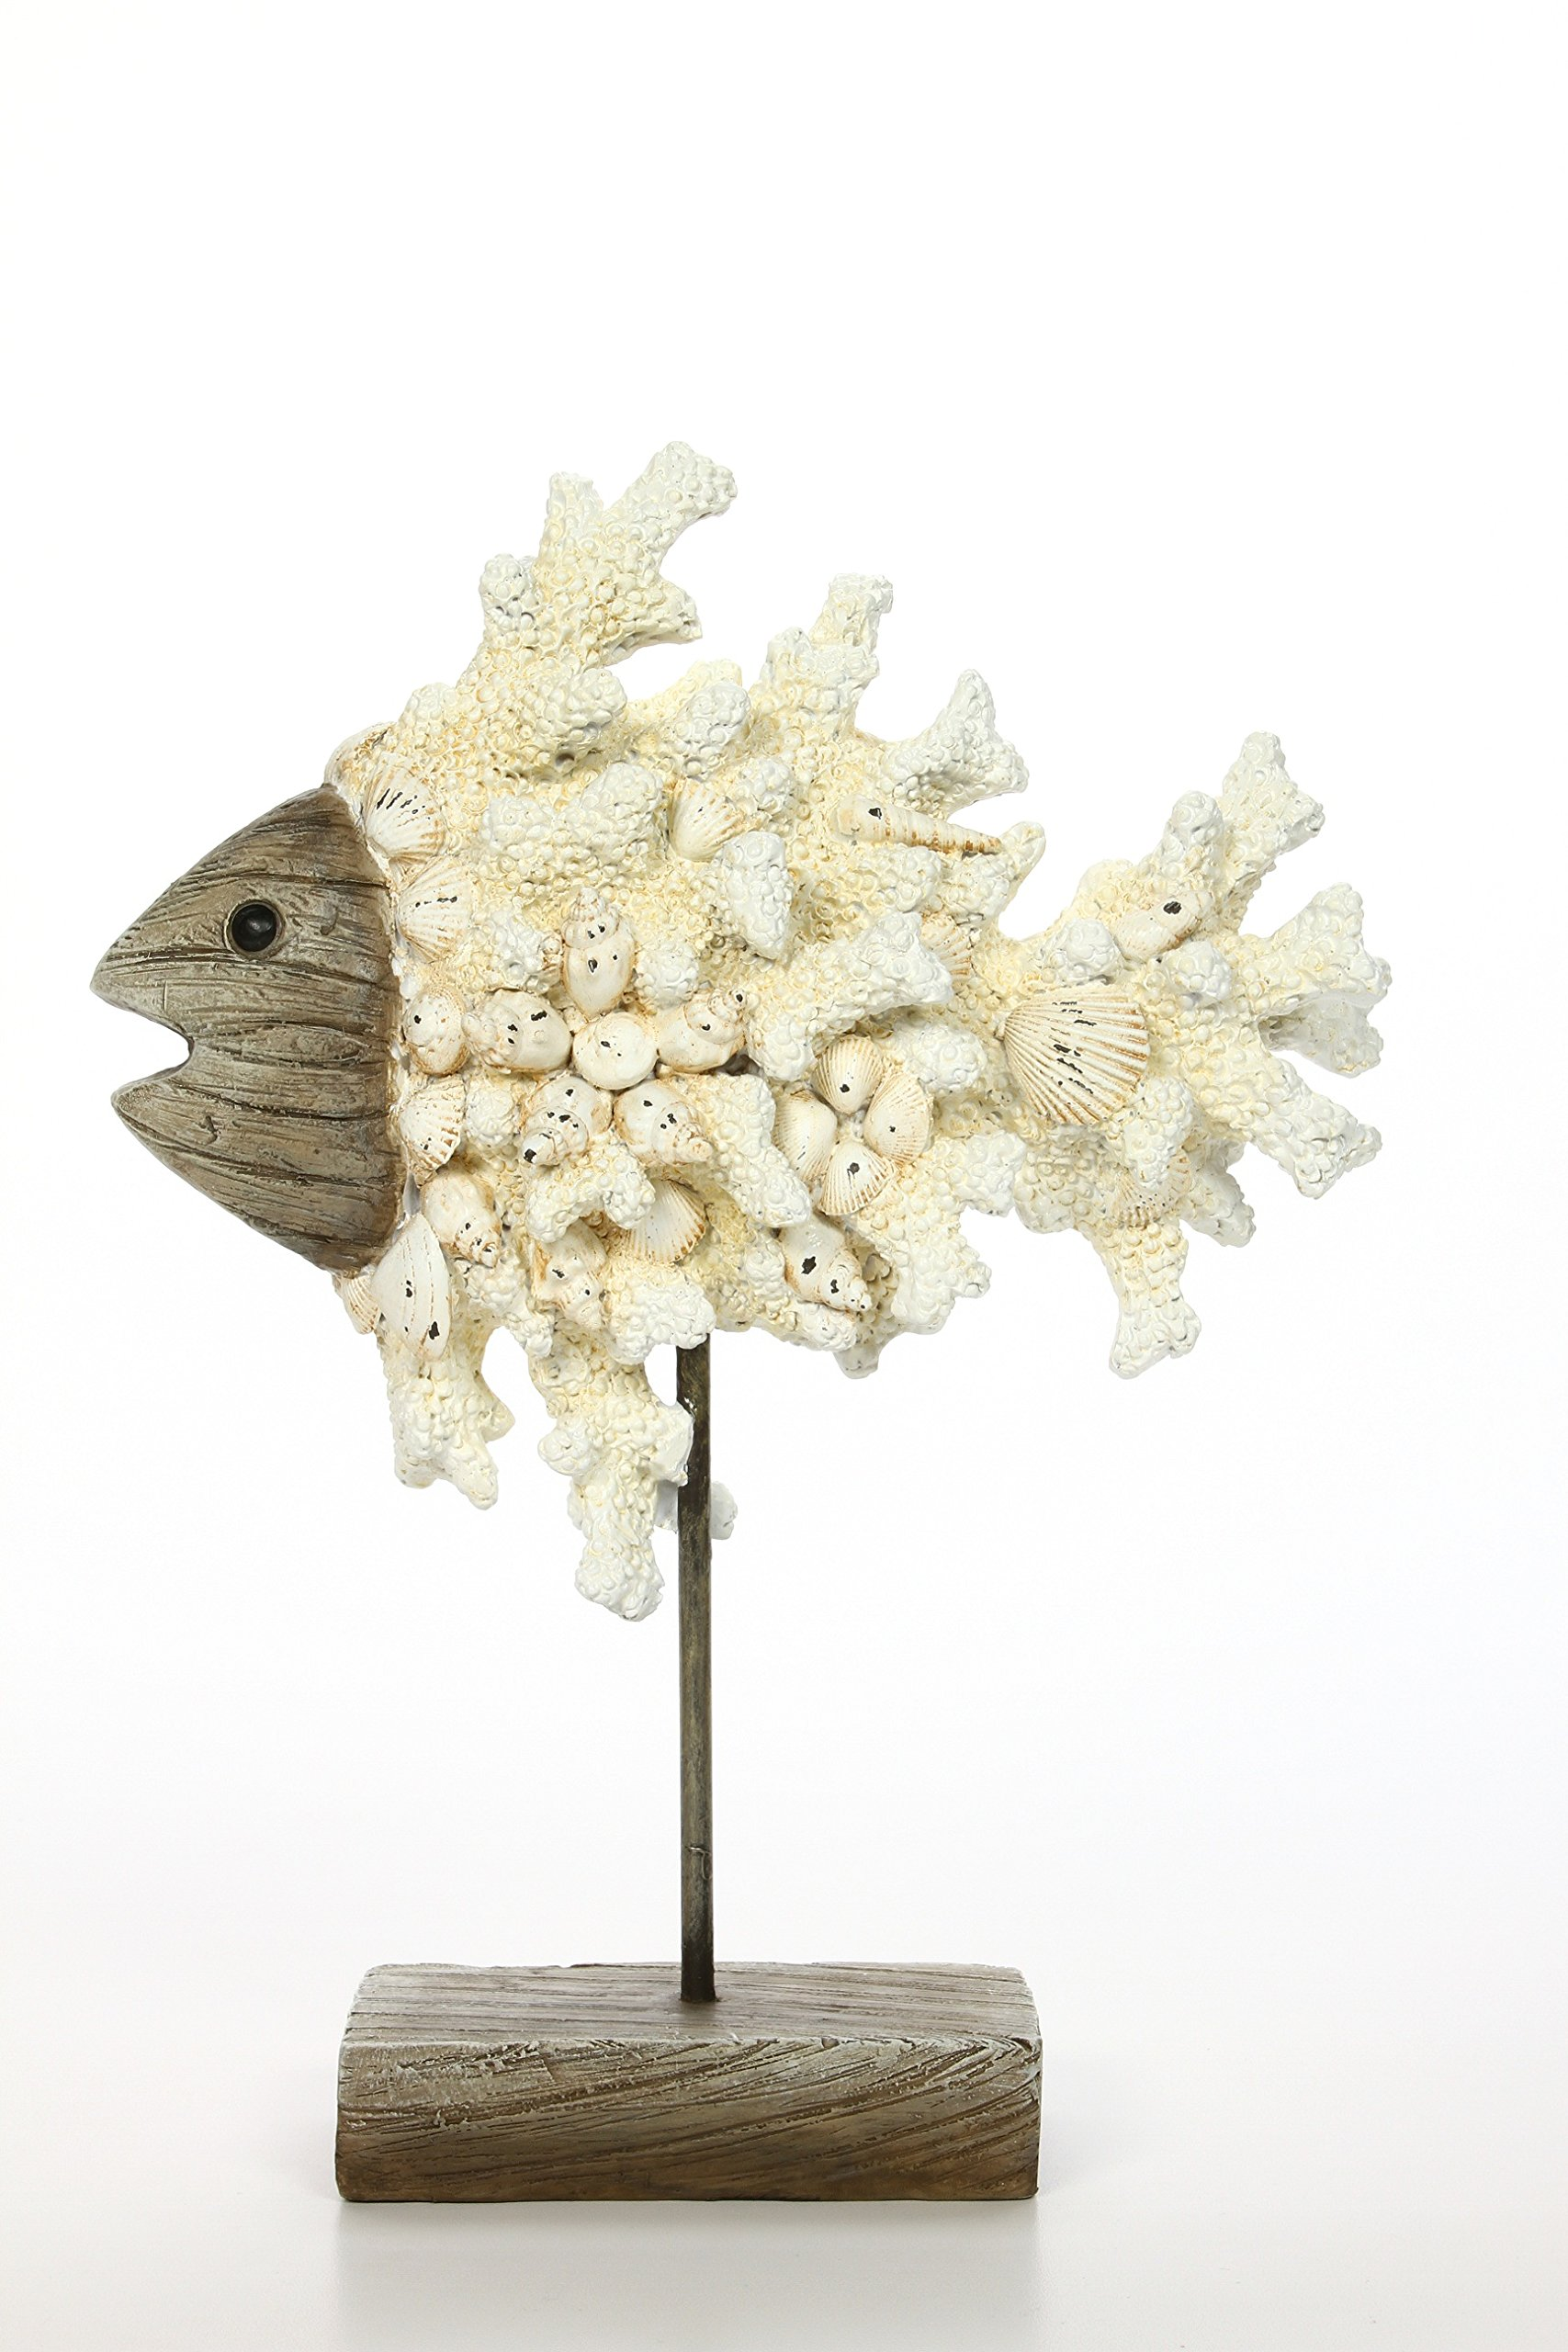 Hosley 12.1'' High, Decorative Tabletop Coral Reef Fish. Ideal Gift for Wedding, Home, Party Favor, Spa, Reiki, Meditation, Bathroom Settings O9